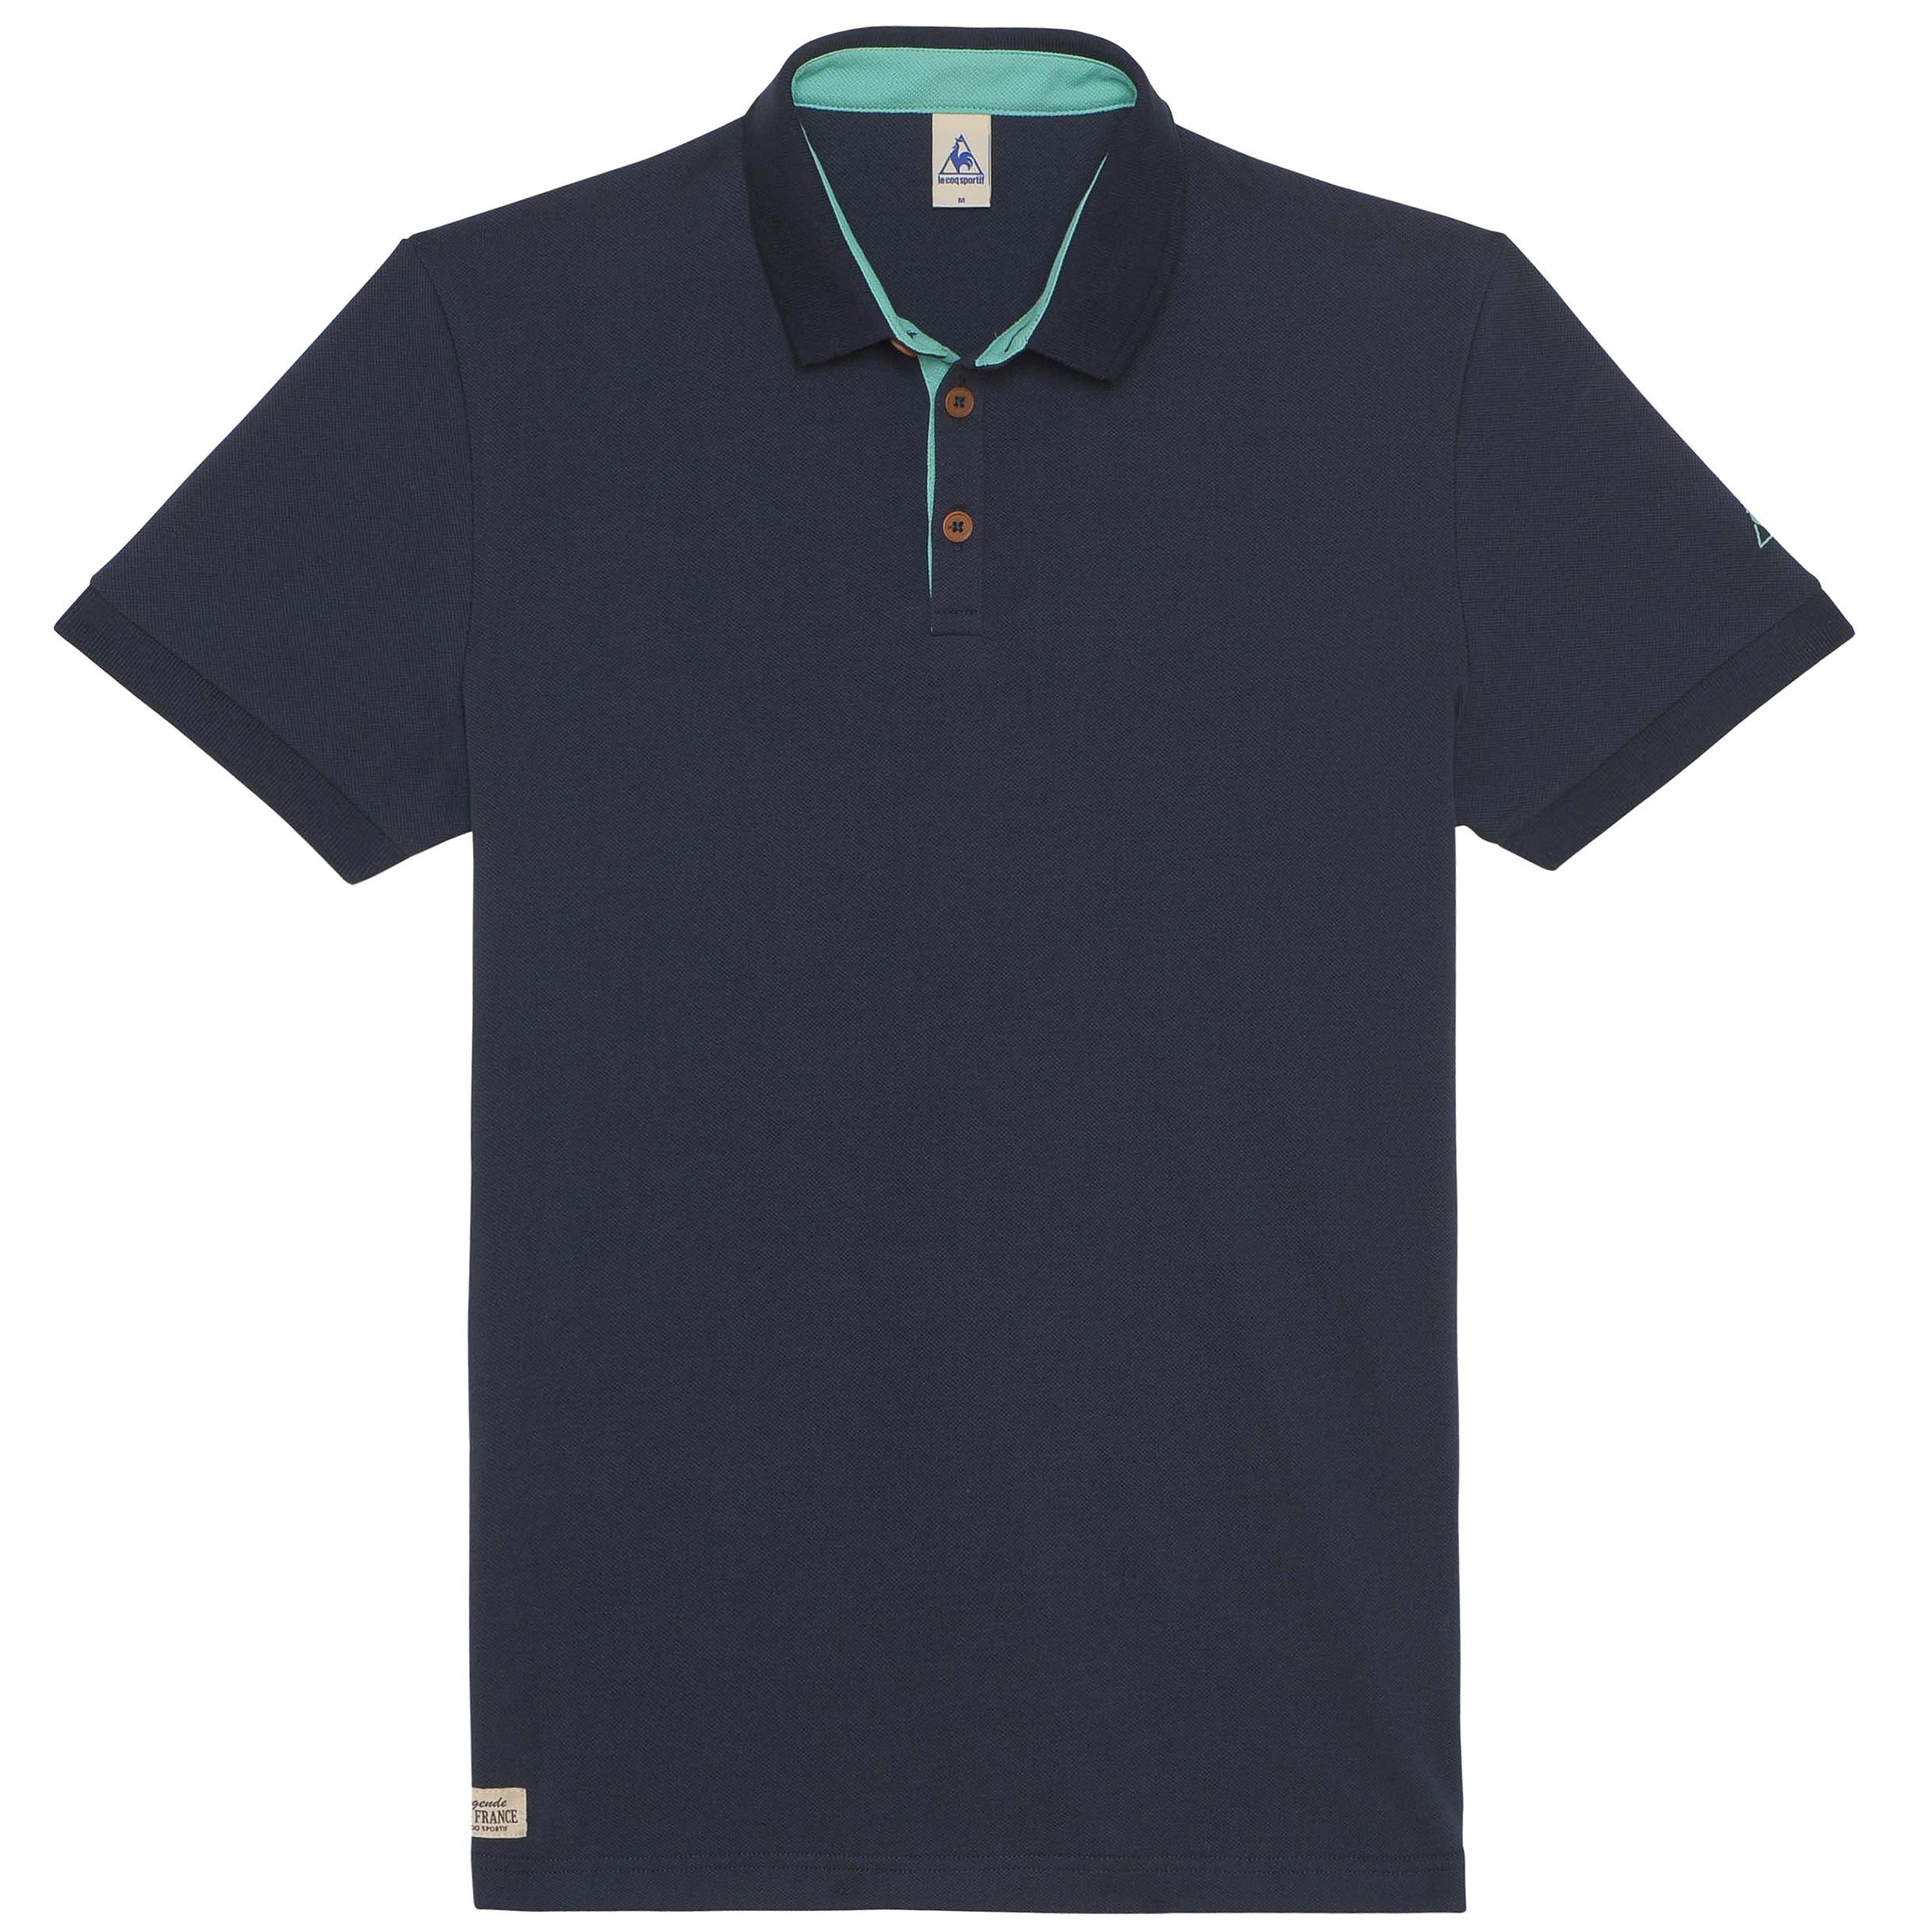 Le Tour de France Le Coq Sportif La Grande Boucle Polo - Dress Blues